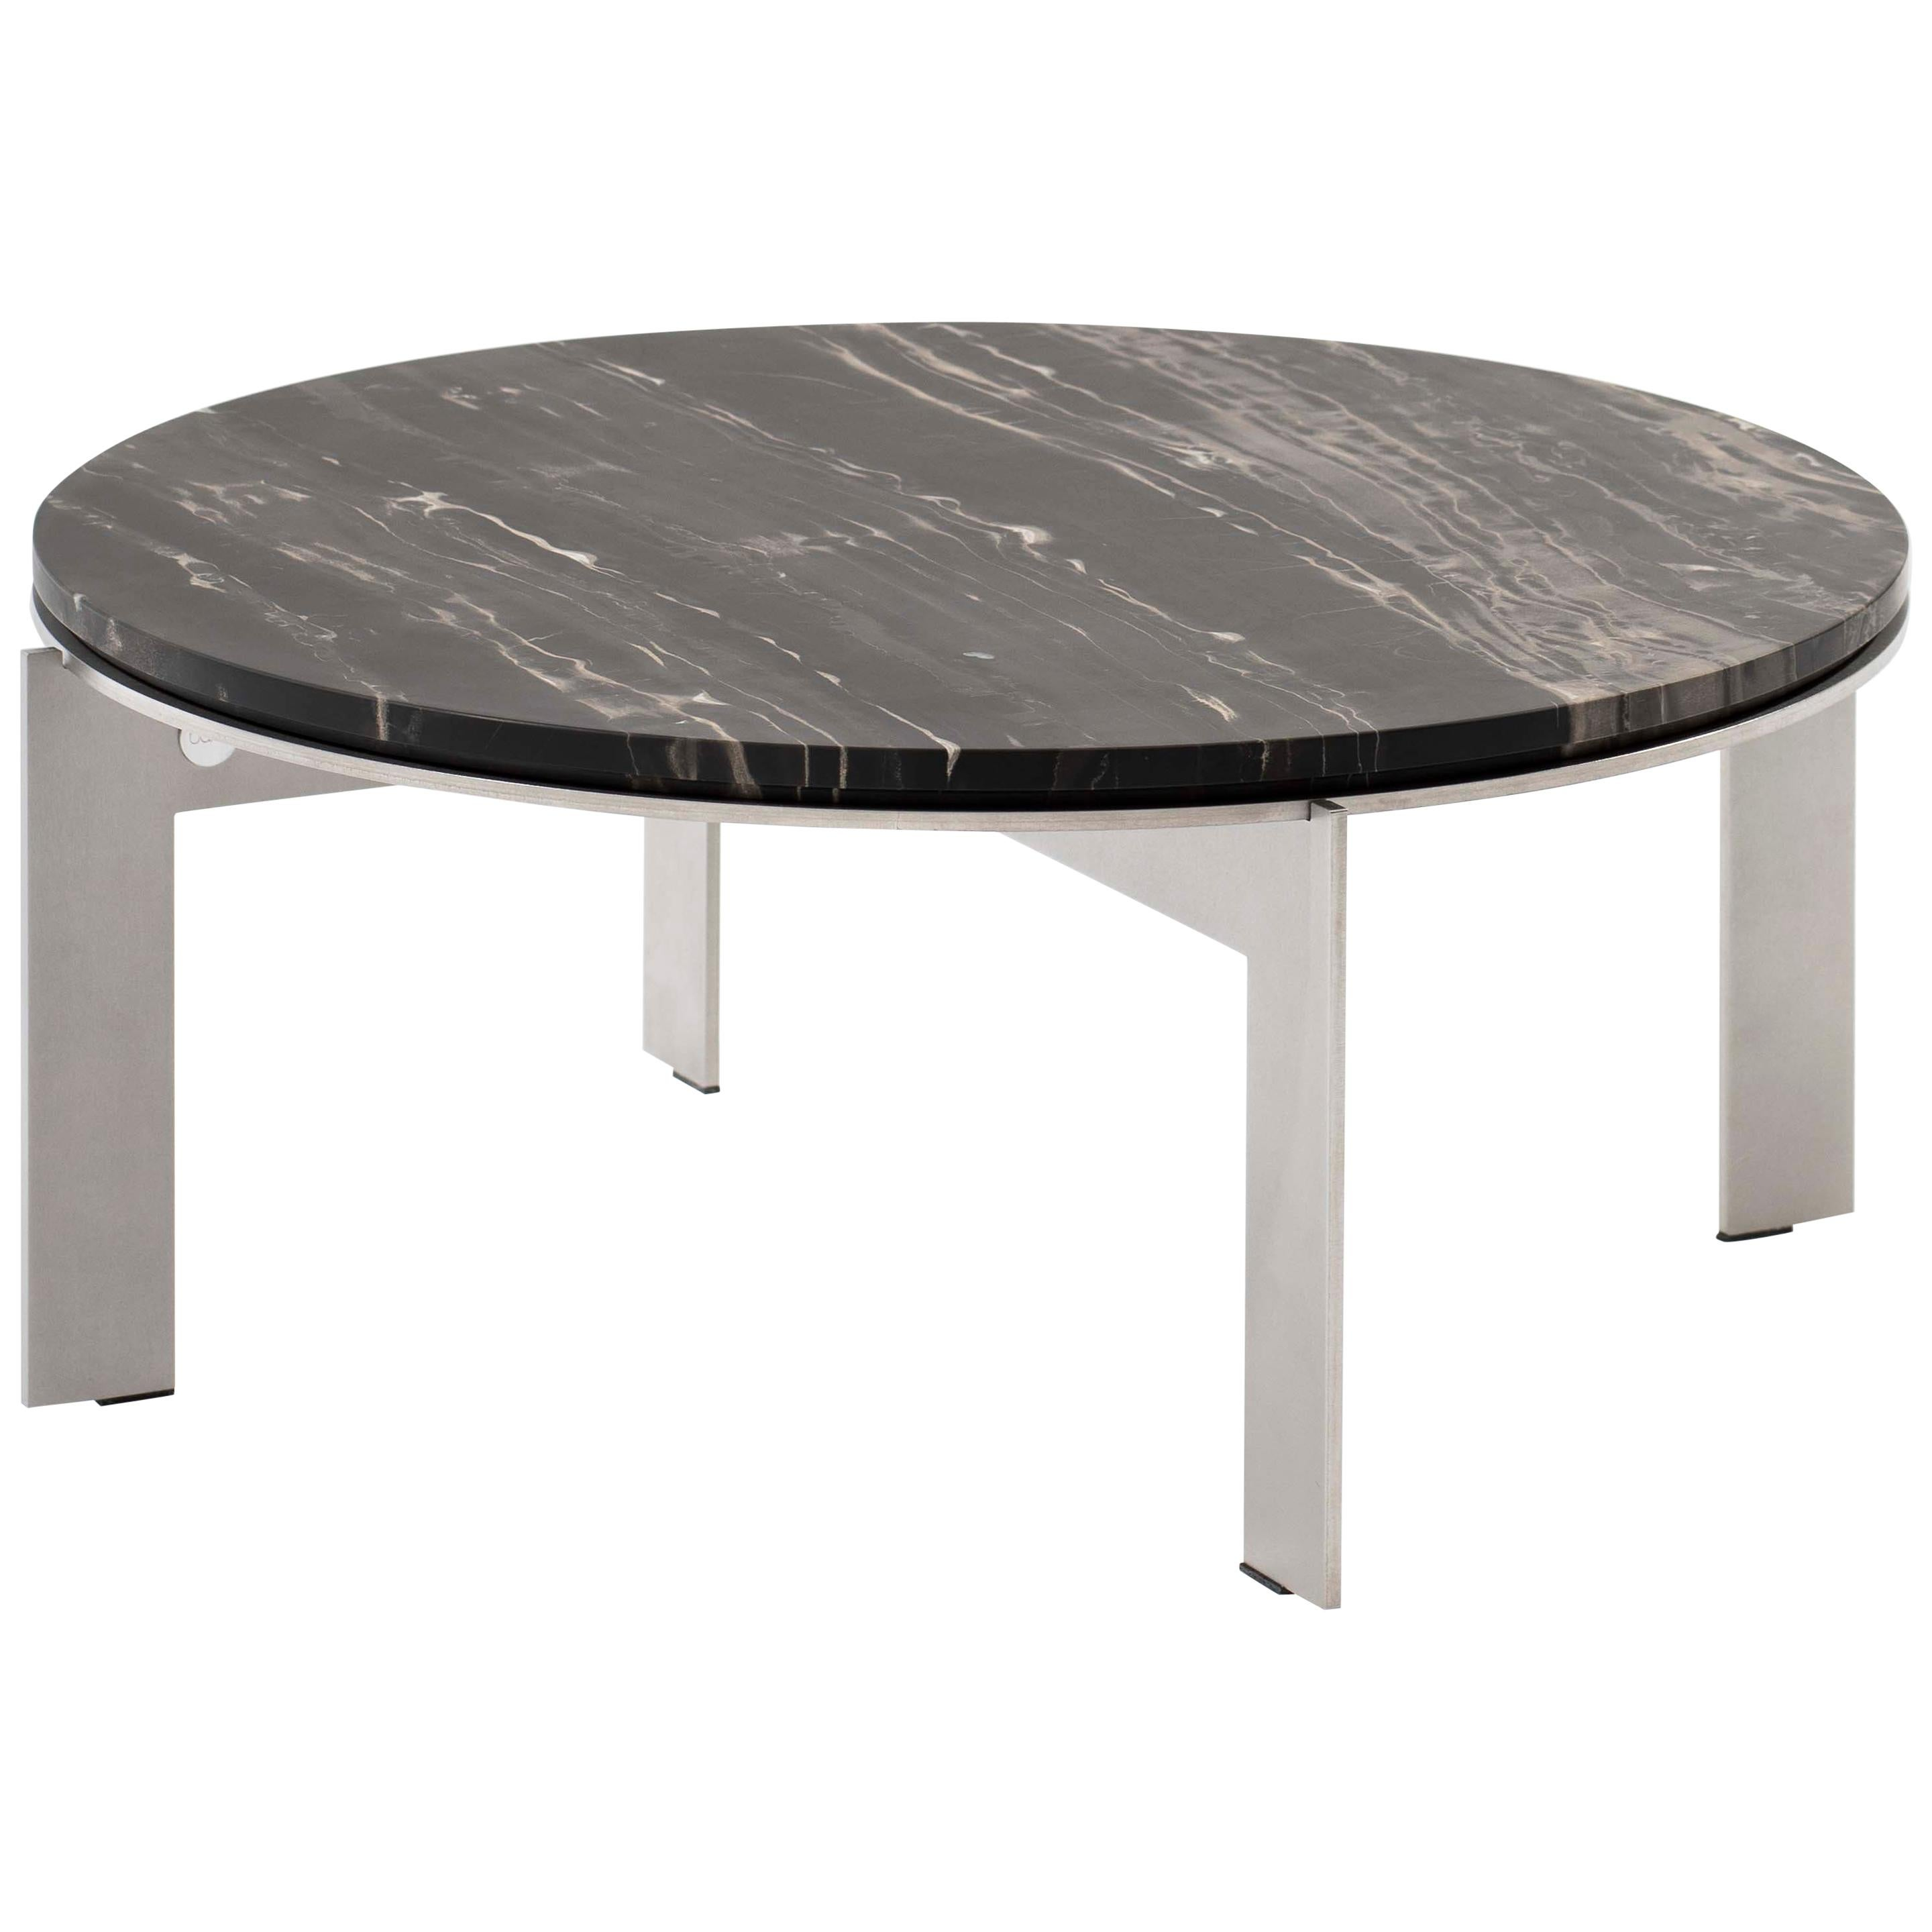 Contemporary Marble Side Table, Joined RO24.4 by Barh